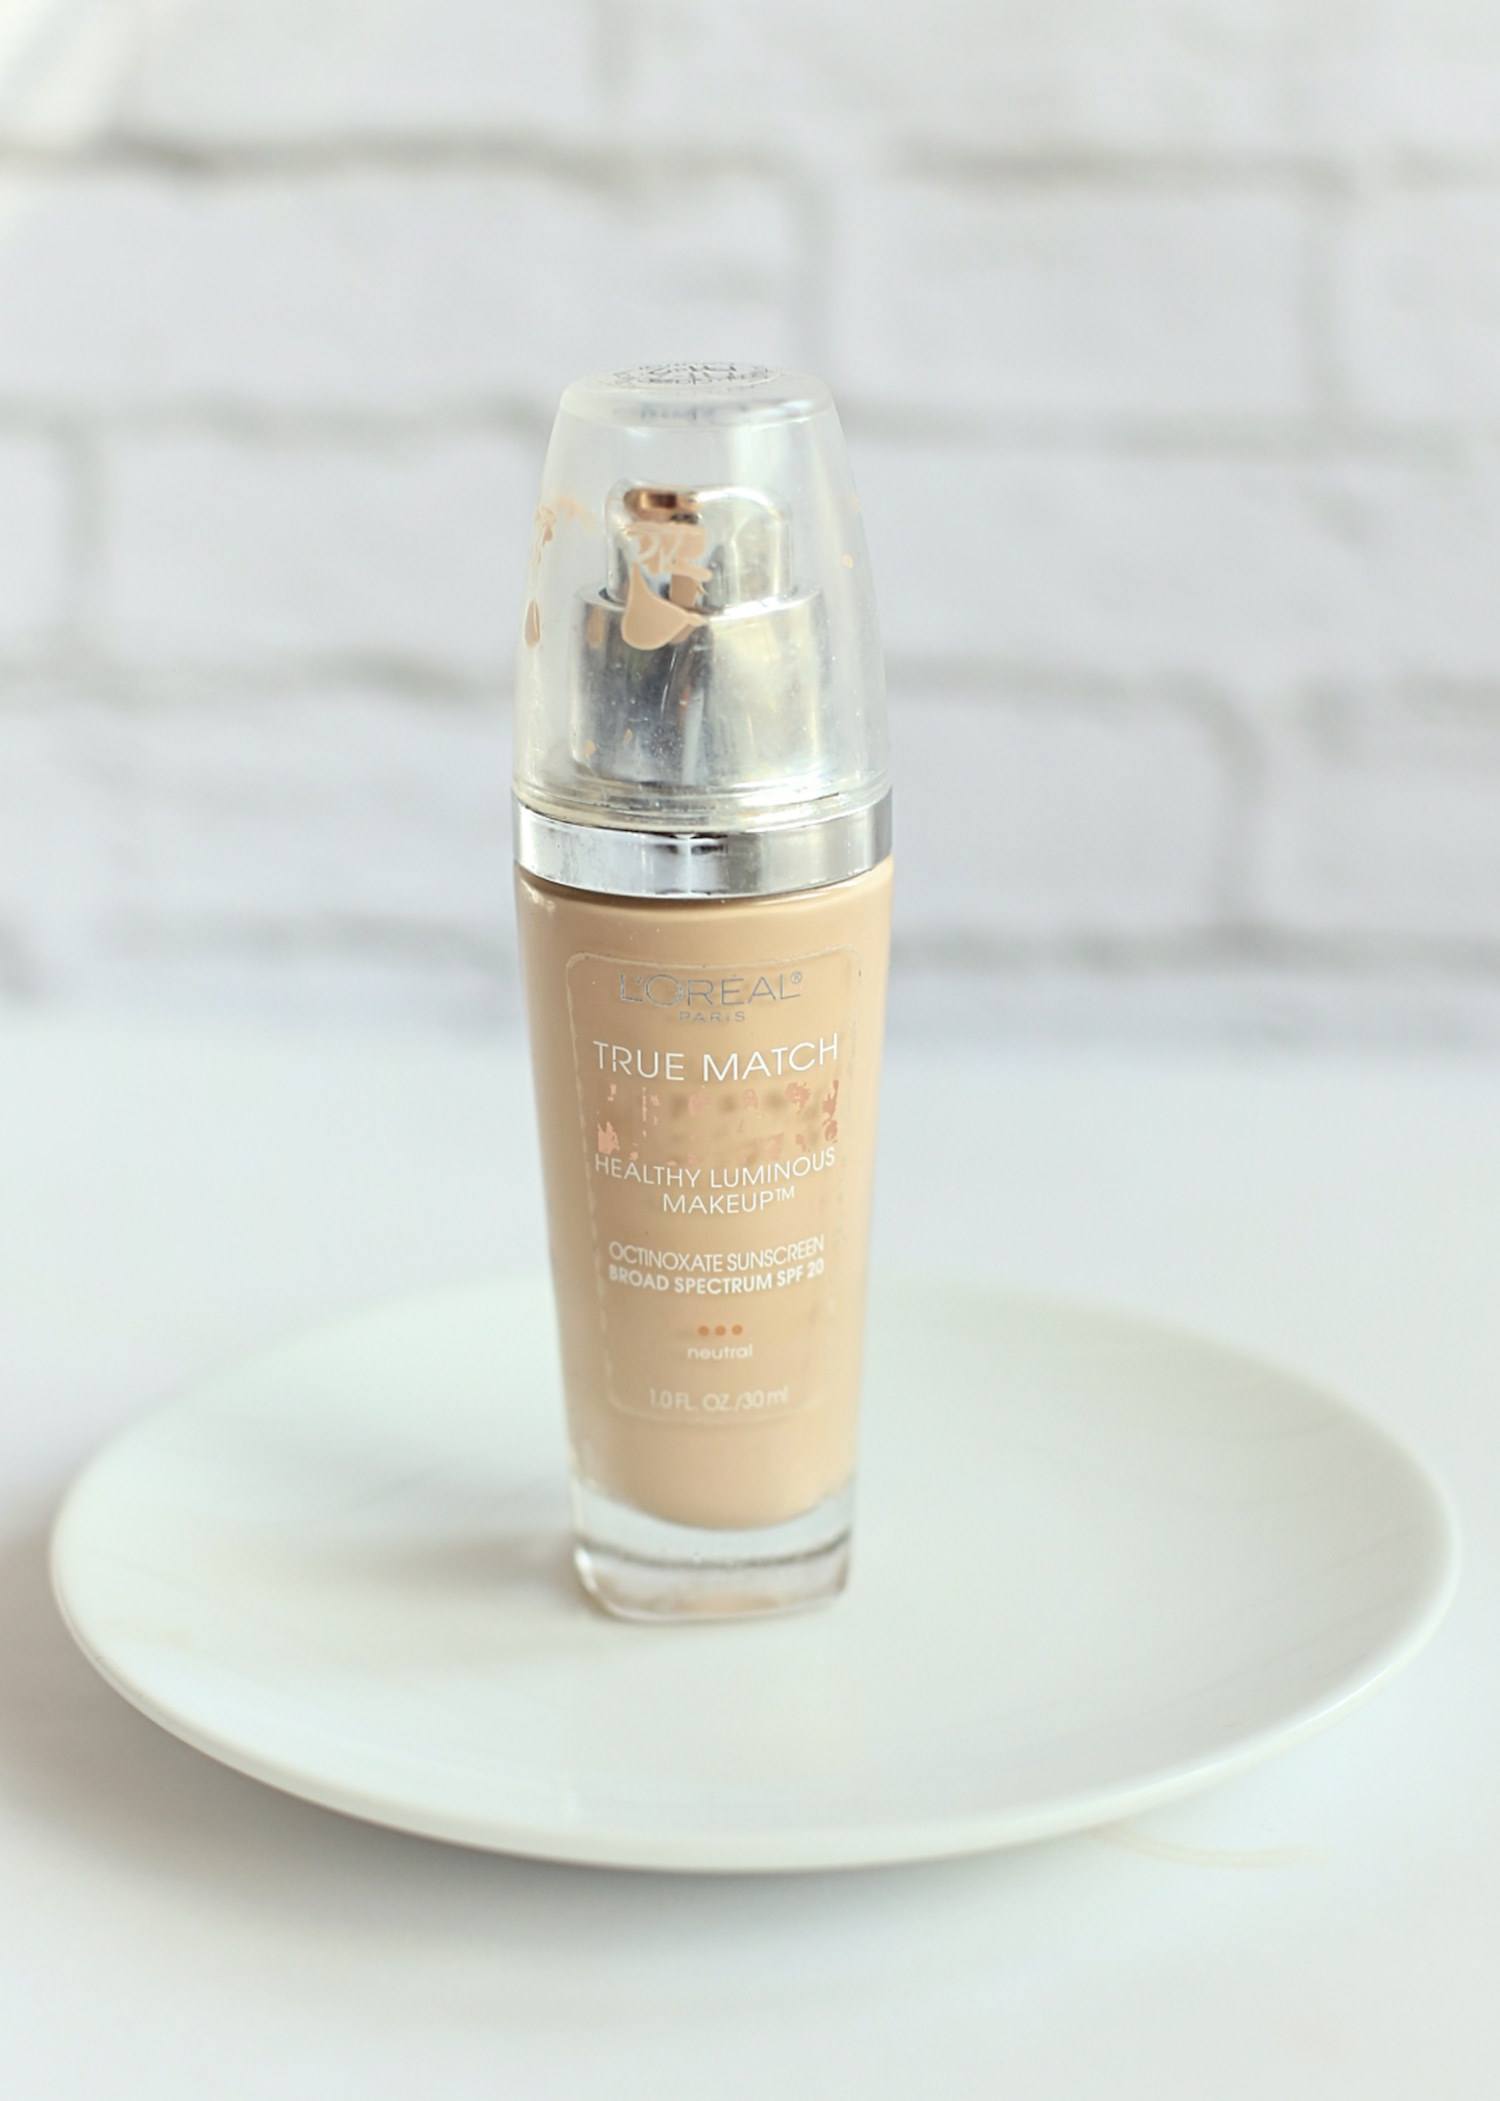 My Favorite Drugstore Makeup Products - Loreal Lumi Foundation | TrufflesandTrends.com